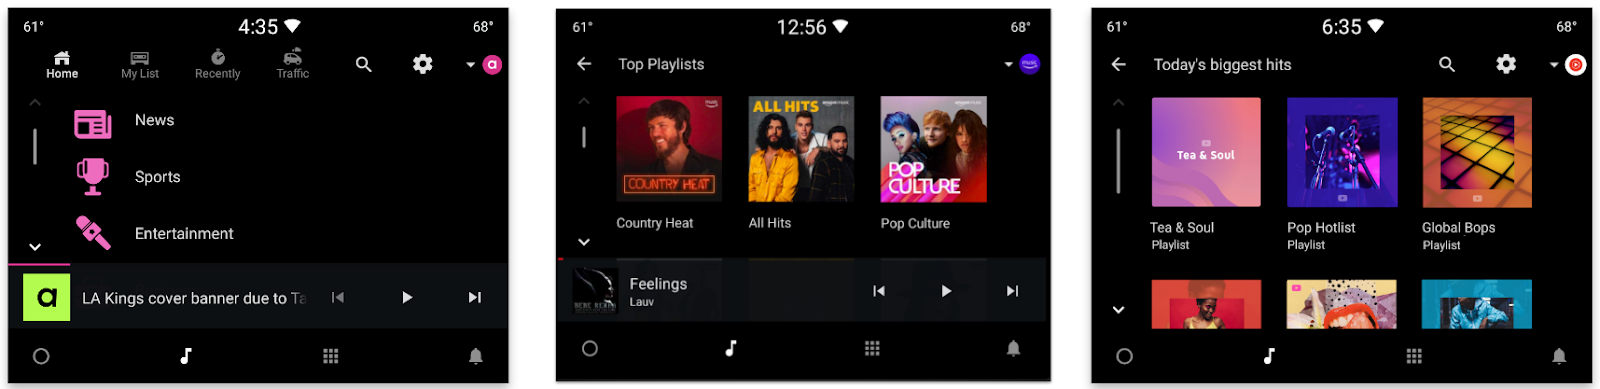 Audioburst, Amazon Music and YouTube Music running on the Android Automotive OS emulator